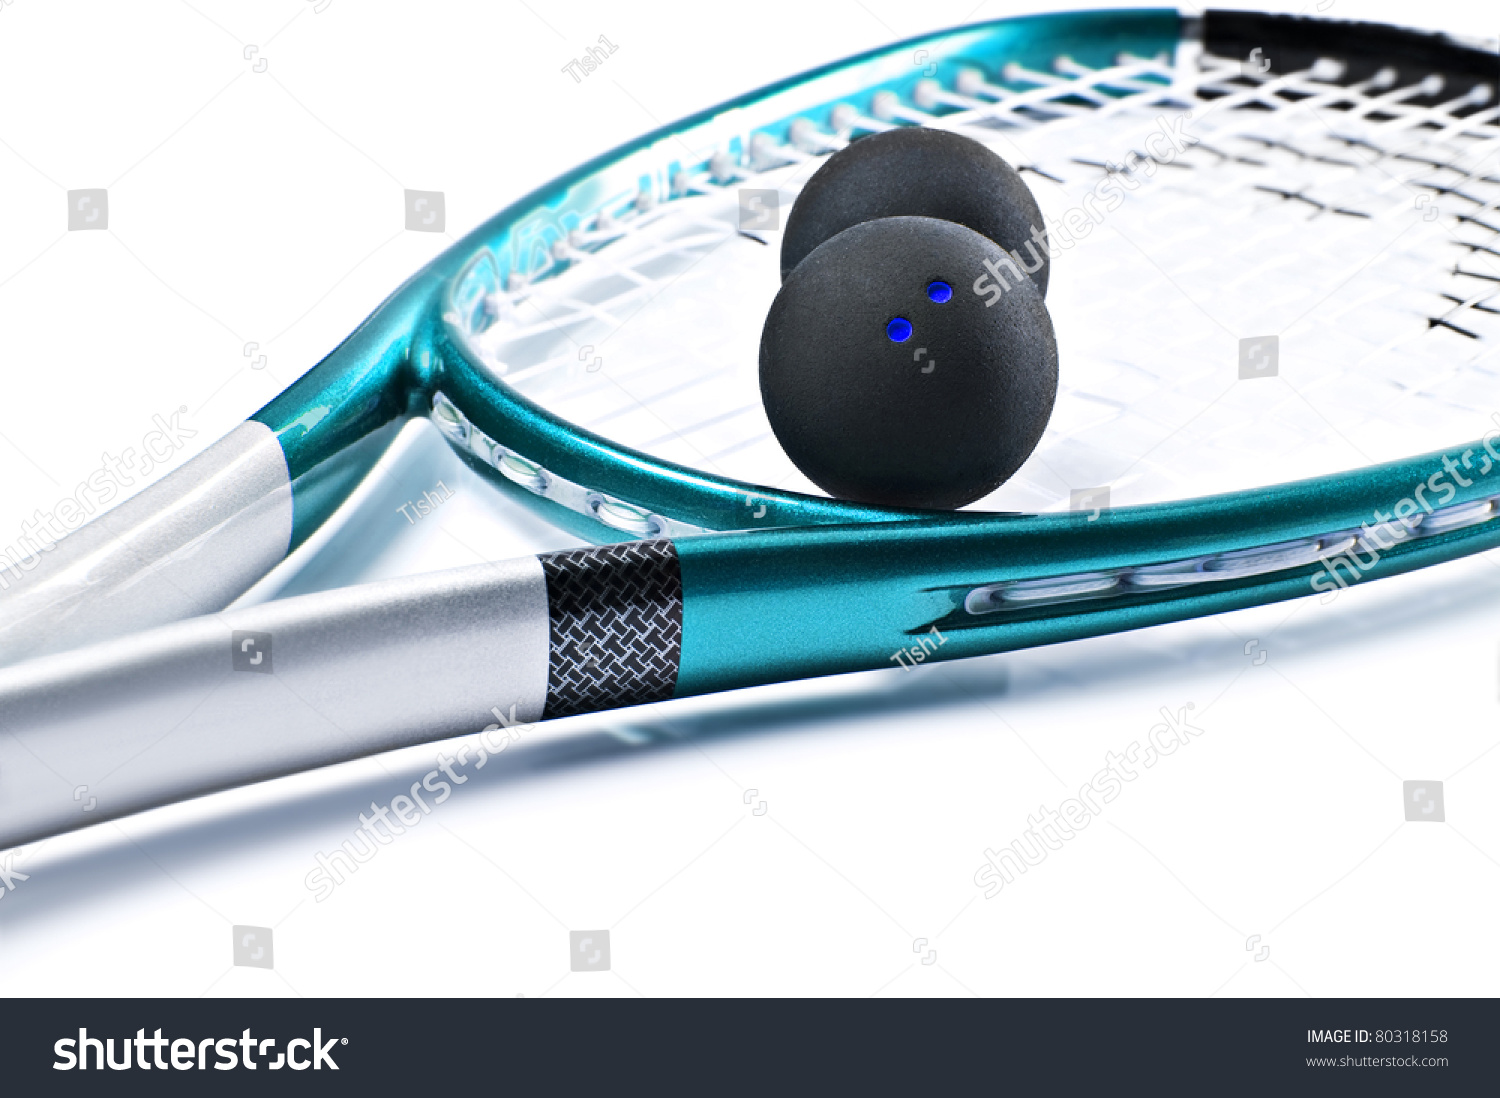 Balls furthermore 251535812463 also Prince Team Airstick 500 Squash Racquet Red Black as well Love 20and 20hate additionally Squash Balls Coloured Dots. on blue dot squash ball